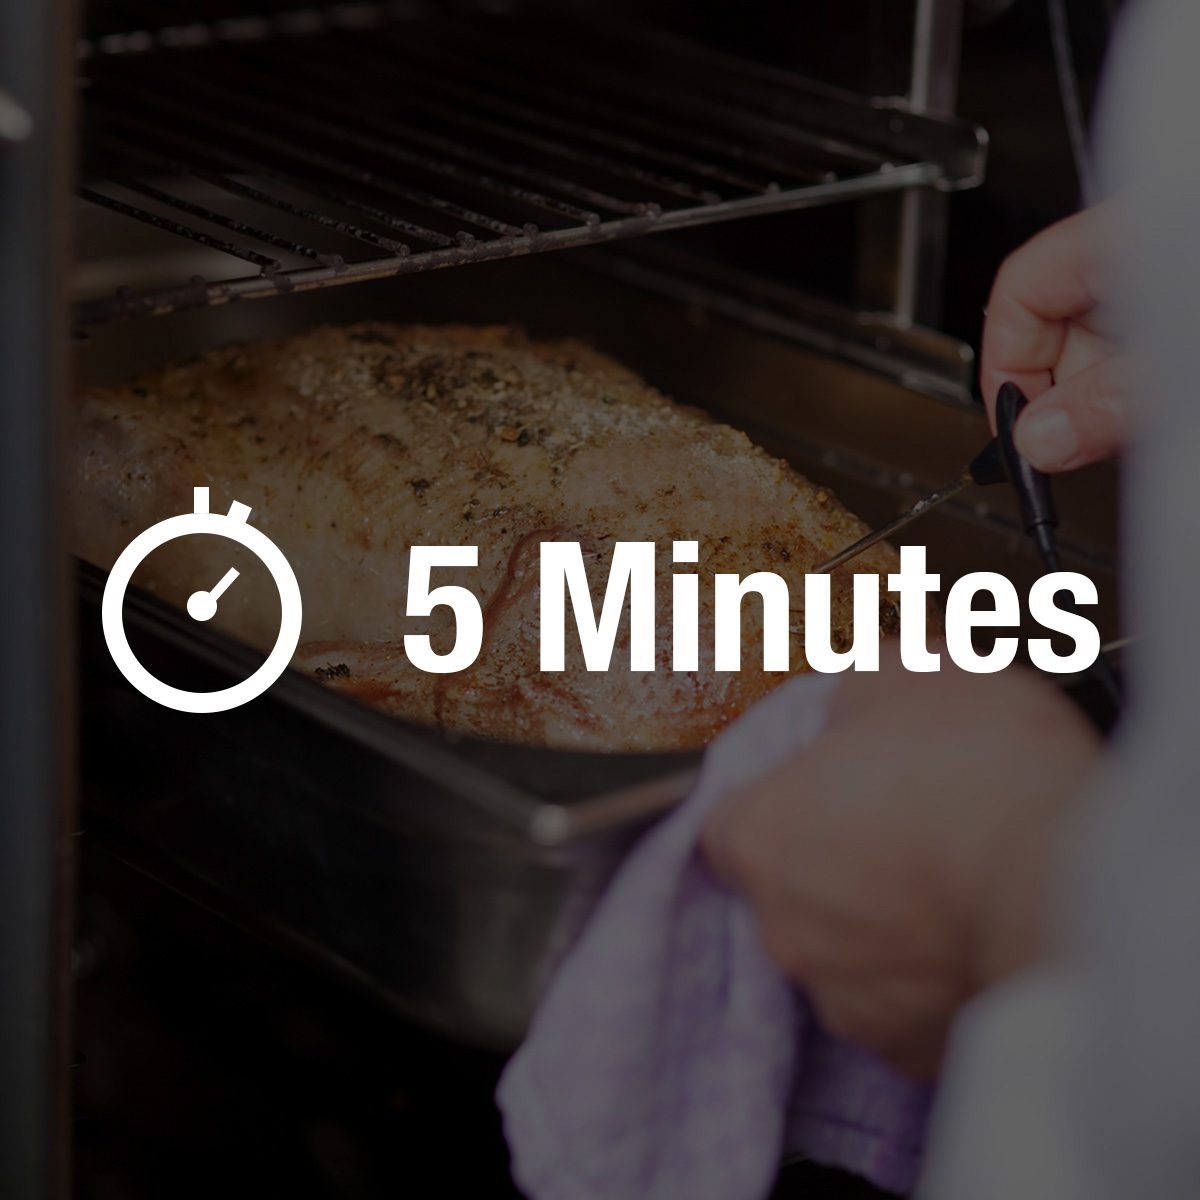 Closeup of chef's hands checking temperature of grilled turkey in commercial kitchen